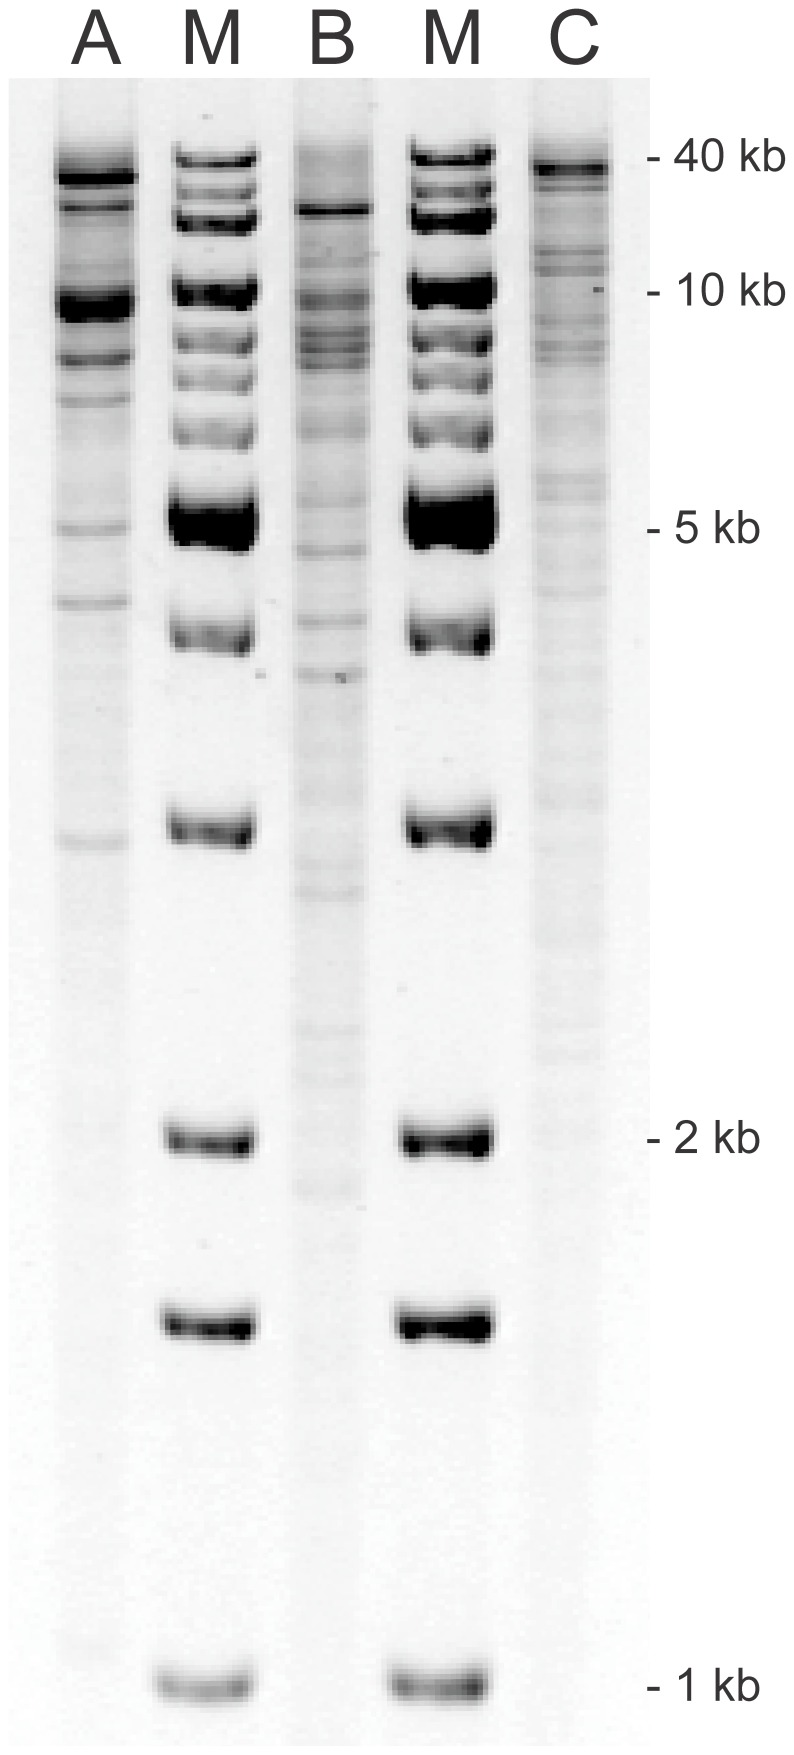 HpaI plasmid profiles of bla CTX-M-94 -, bla CMY-2 - and bla CTX-M-100 -harbouring plasmids. A 0.7% agarose gel was loaded with HpaI restricted plasmid DNA purified from three recombinant E. coli TOP10 strains containing the (A) bla CTX-M-94 -, (B) bla CMY-2 - and (C) bla CTX-M-100 -harbouring plasmids, respectively, and stained with GelRed. Relative mobility calculations, based on known band sizes of the 1 Kb DNA Extension Ladder (M), estimated total plasmid sizes to be (A) 93 kb, (B) 98 kb and (C) 130 kb.